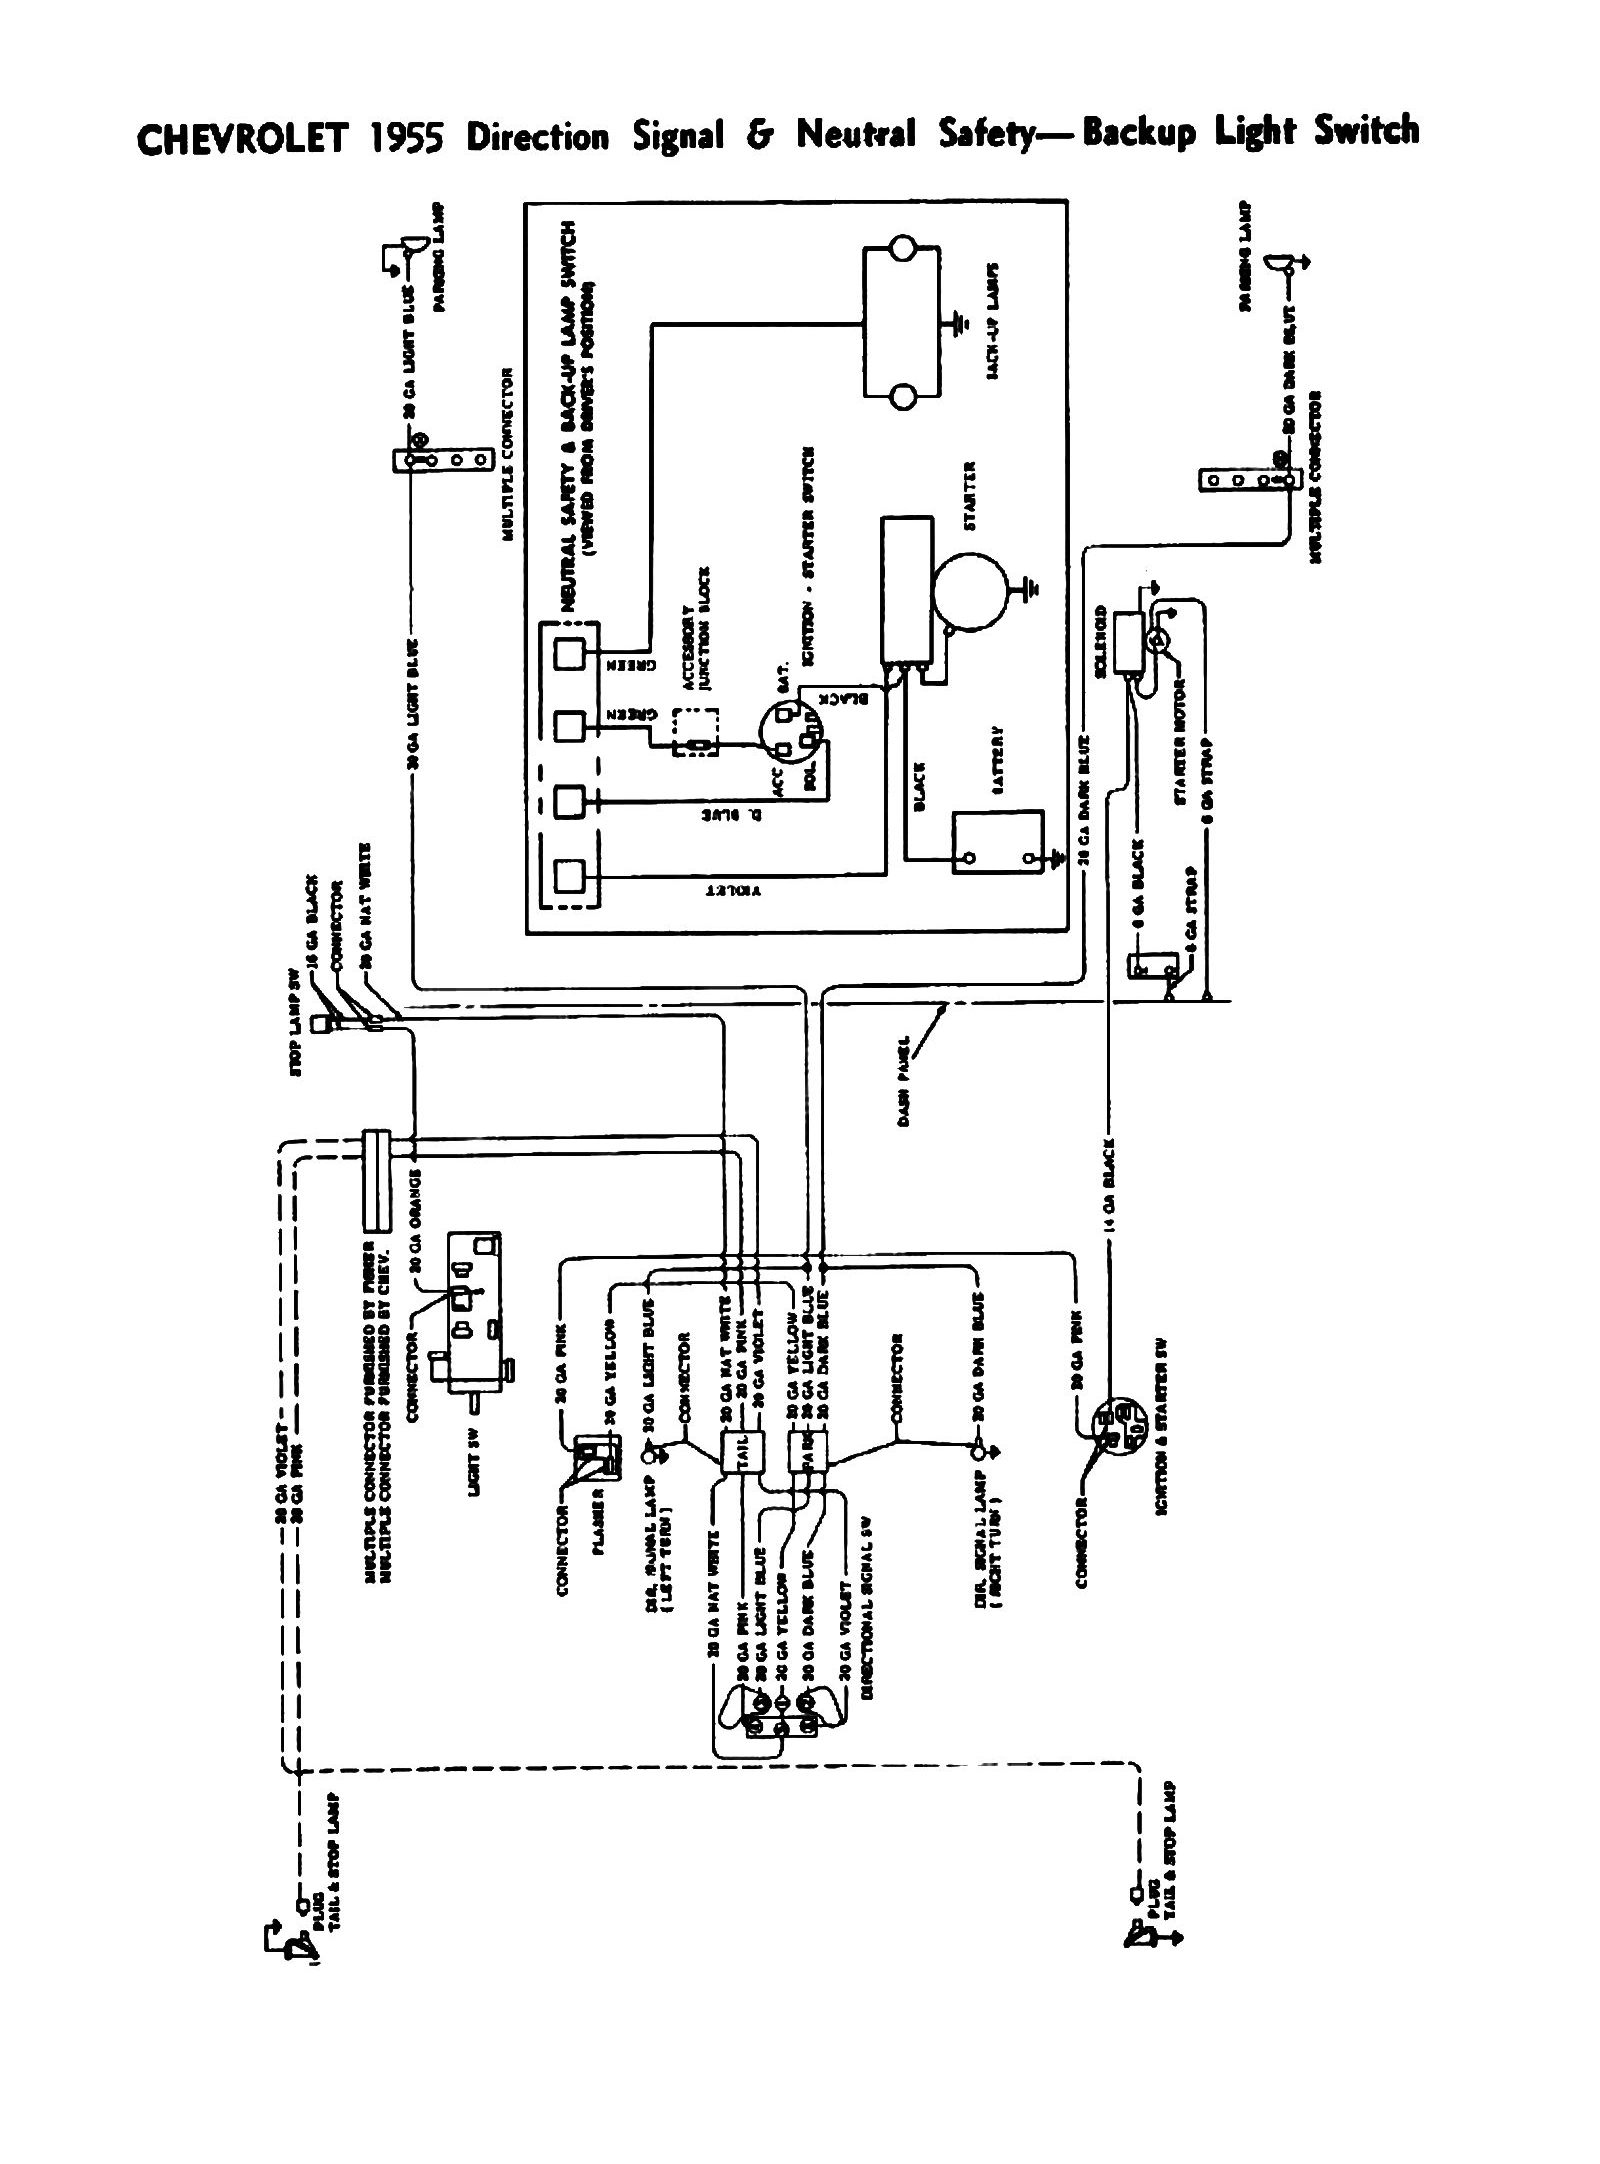 55signal chevy wiring diagrams 1996 chevy truck wiring diagram at edmiracle.co